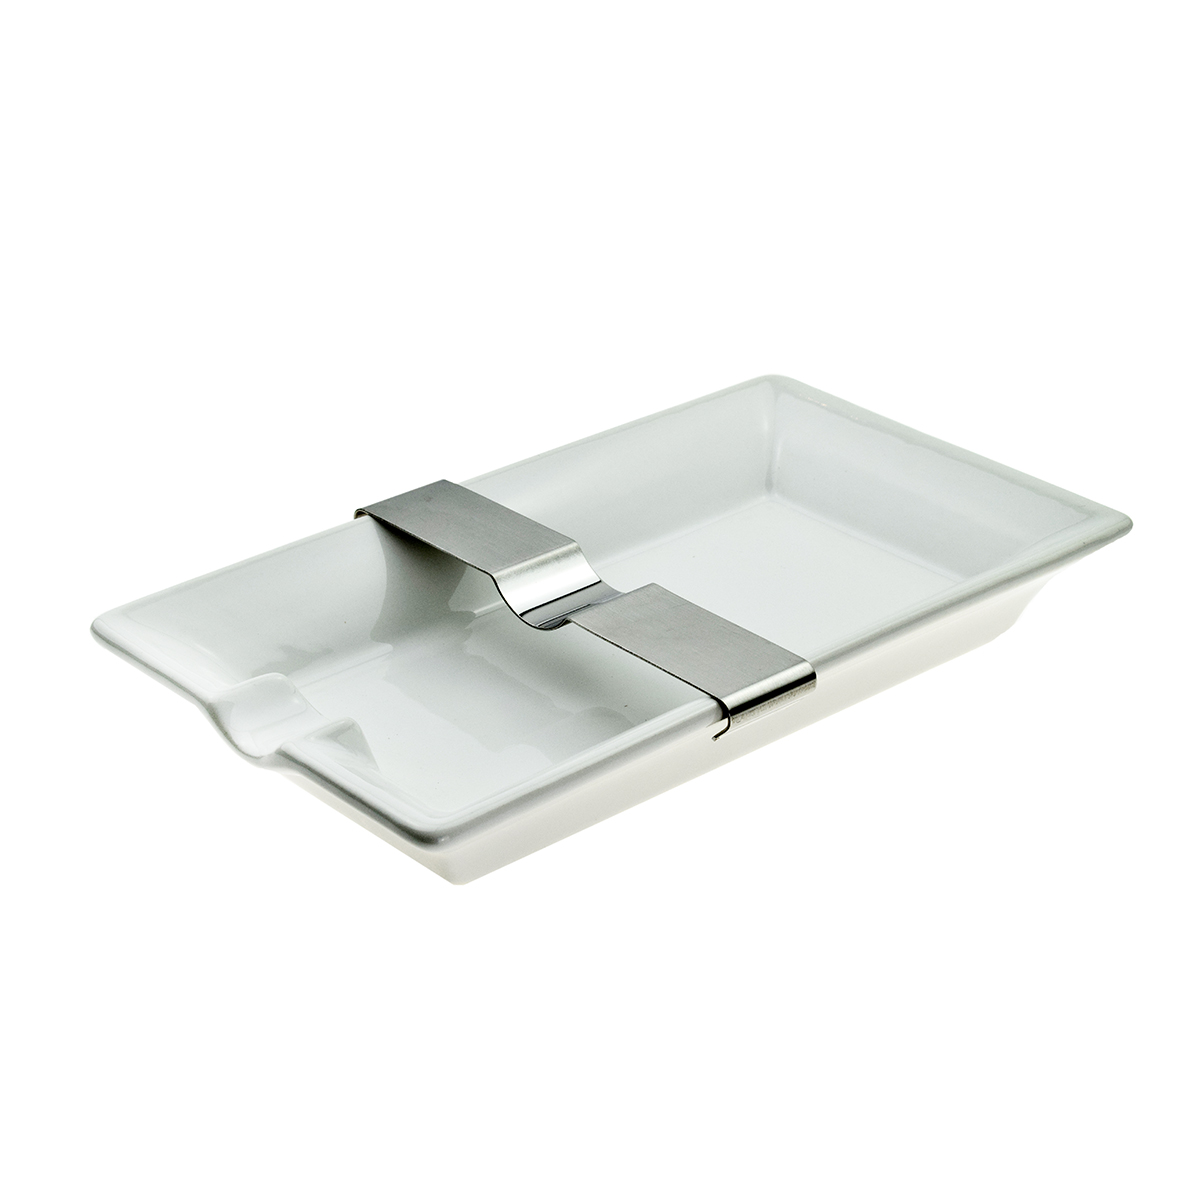 Cigar Ashtray White With Moveable Rest Approx 20 x 12cm Boxed 1